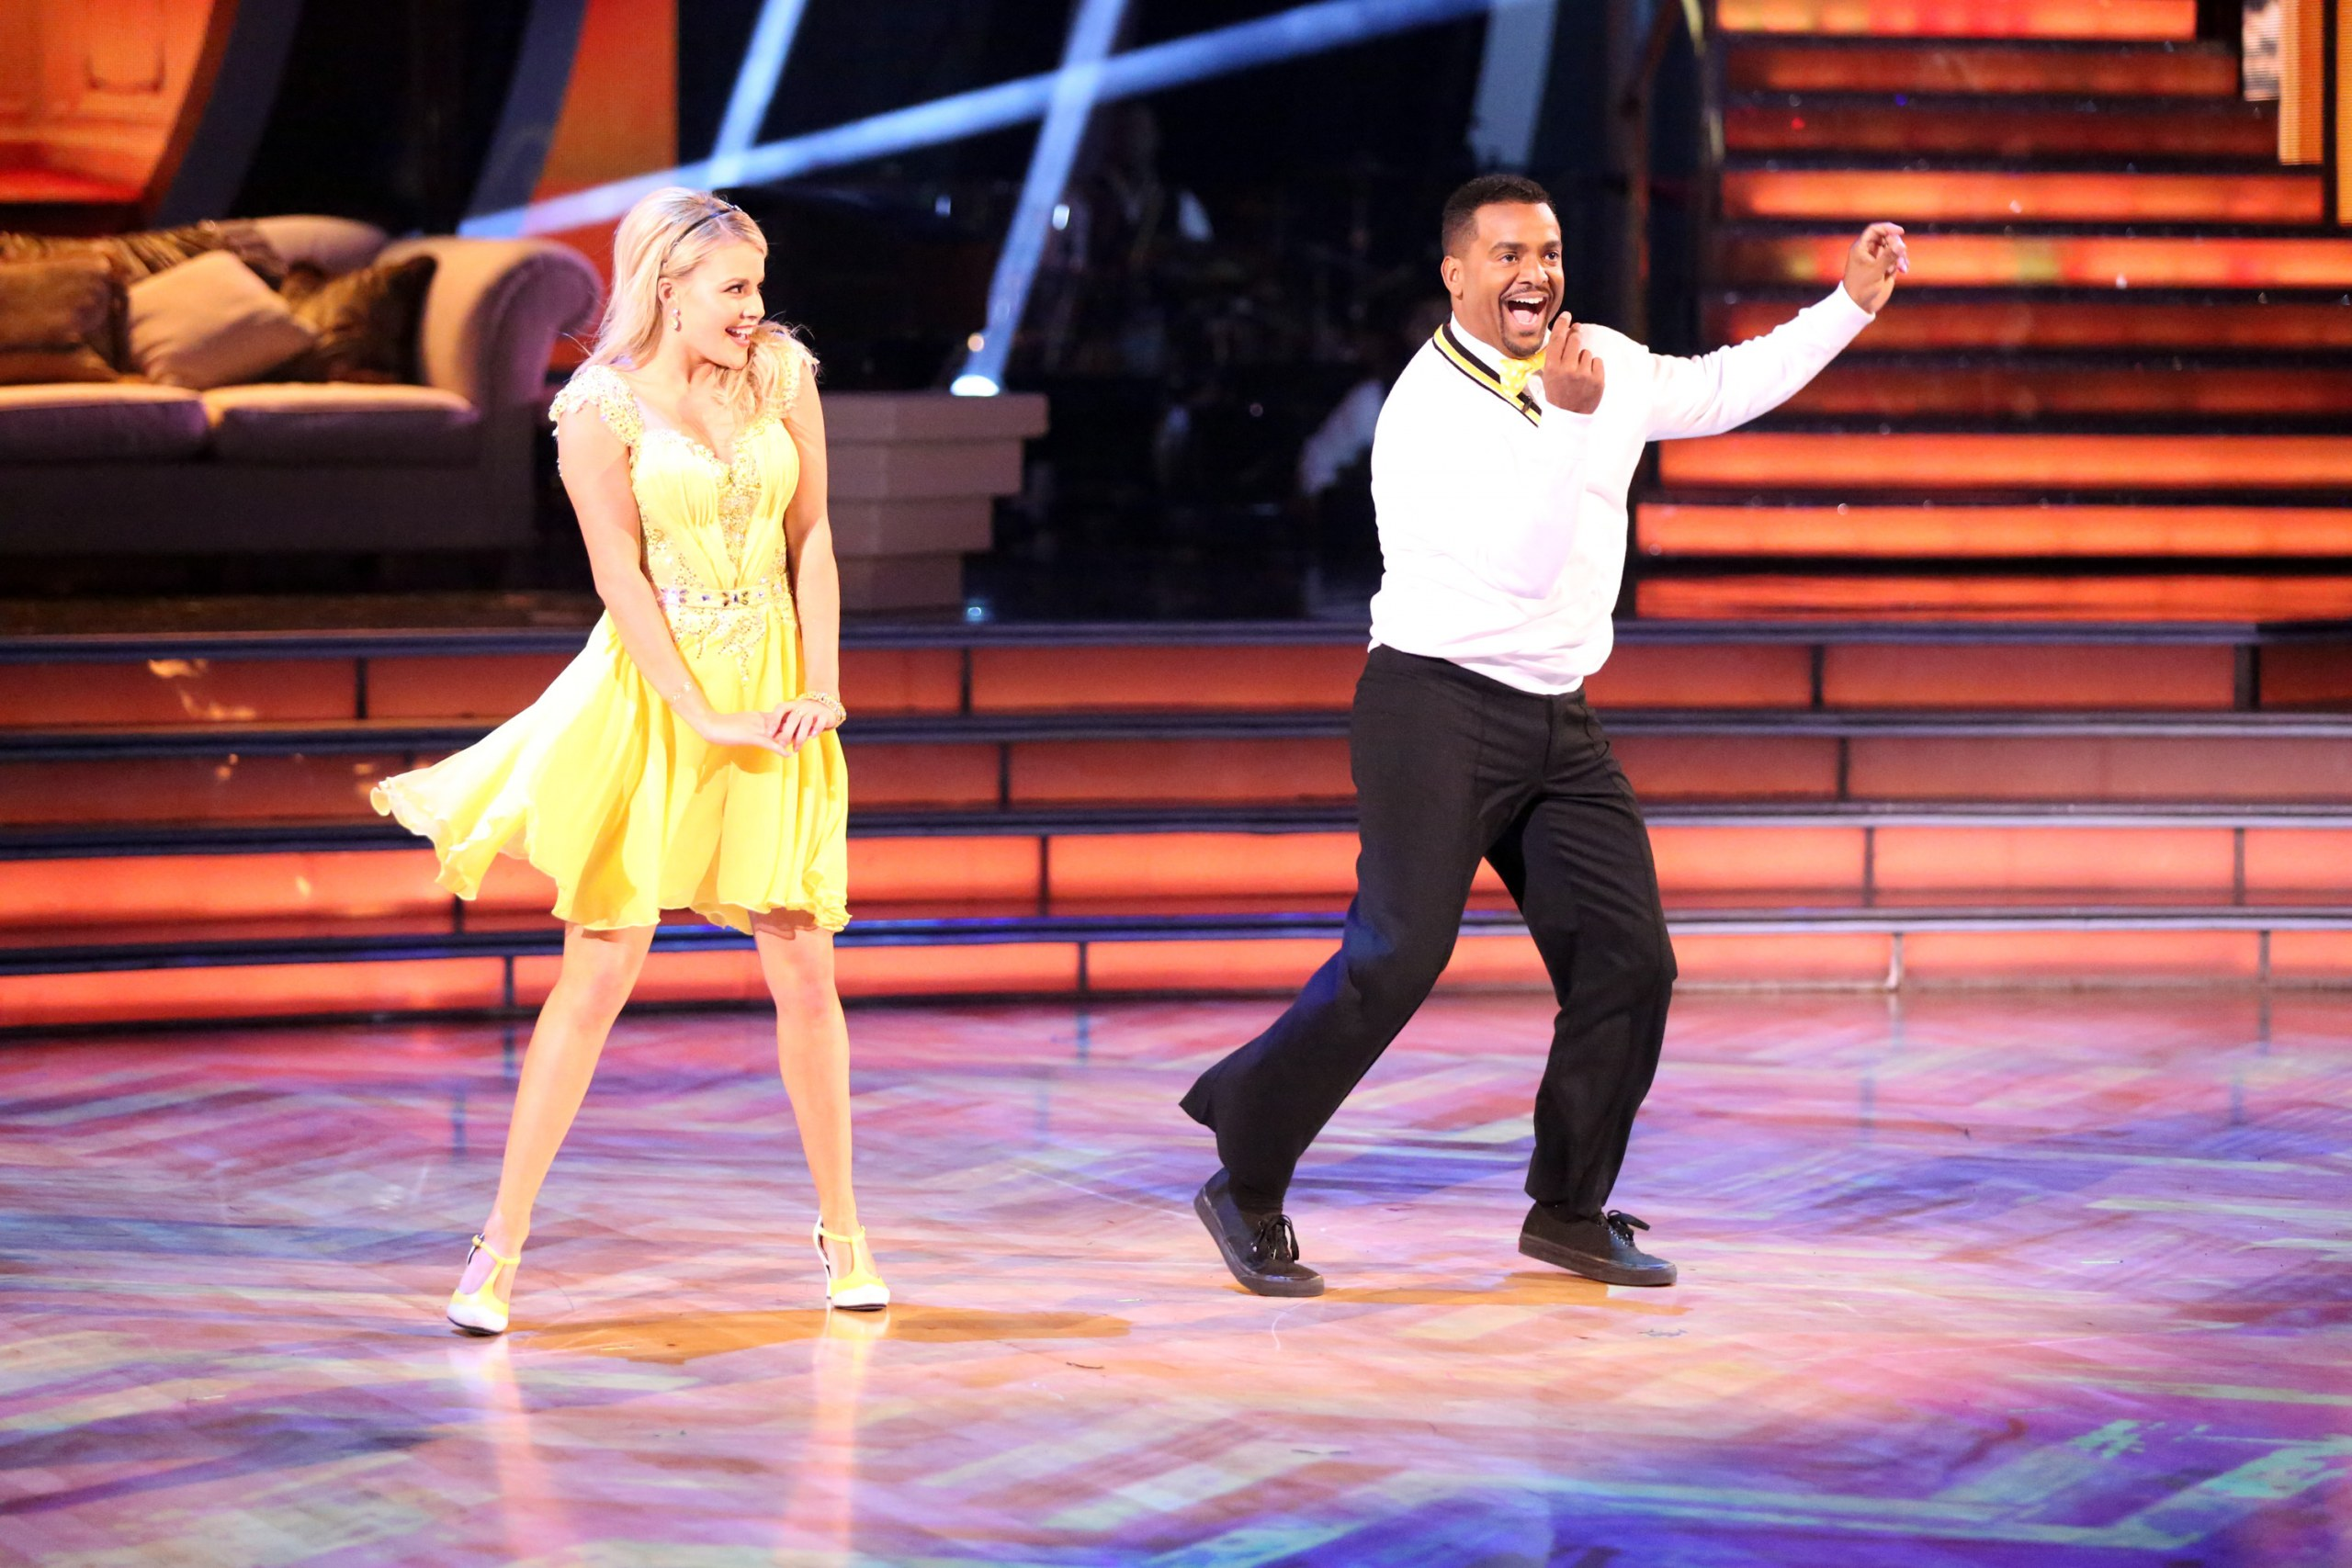 US Copyright Office denies 'Carlton Dance' protection request